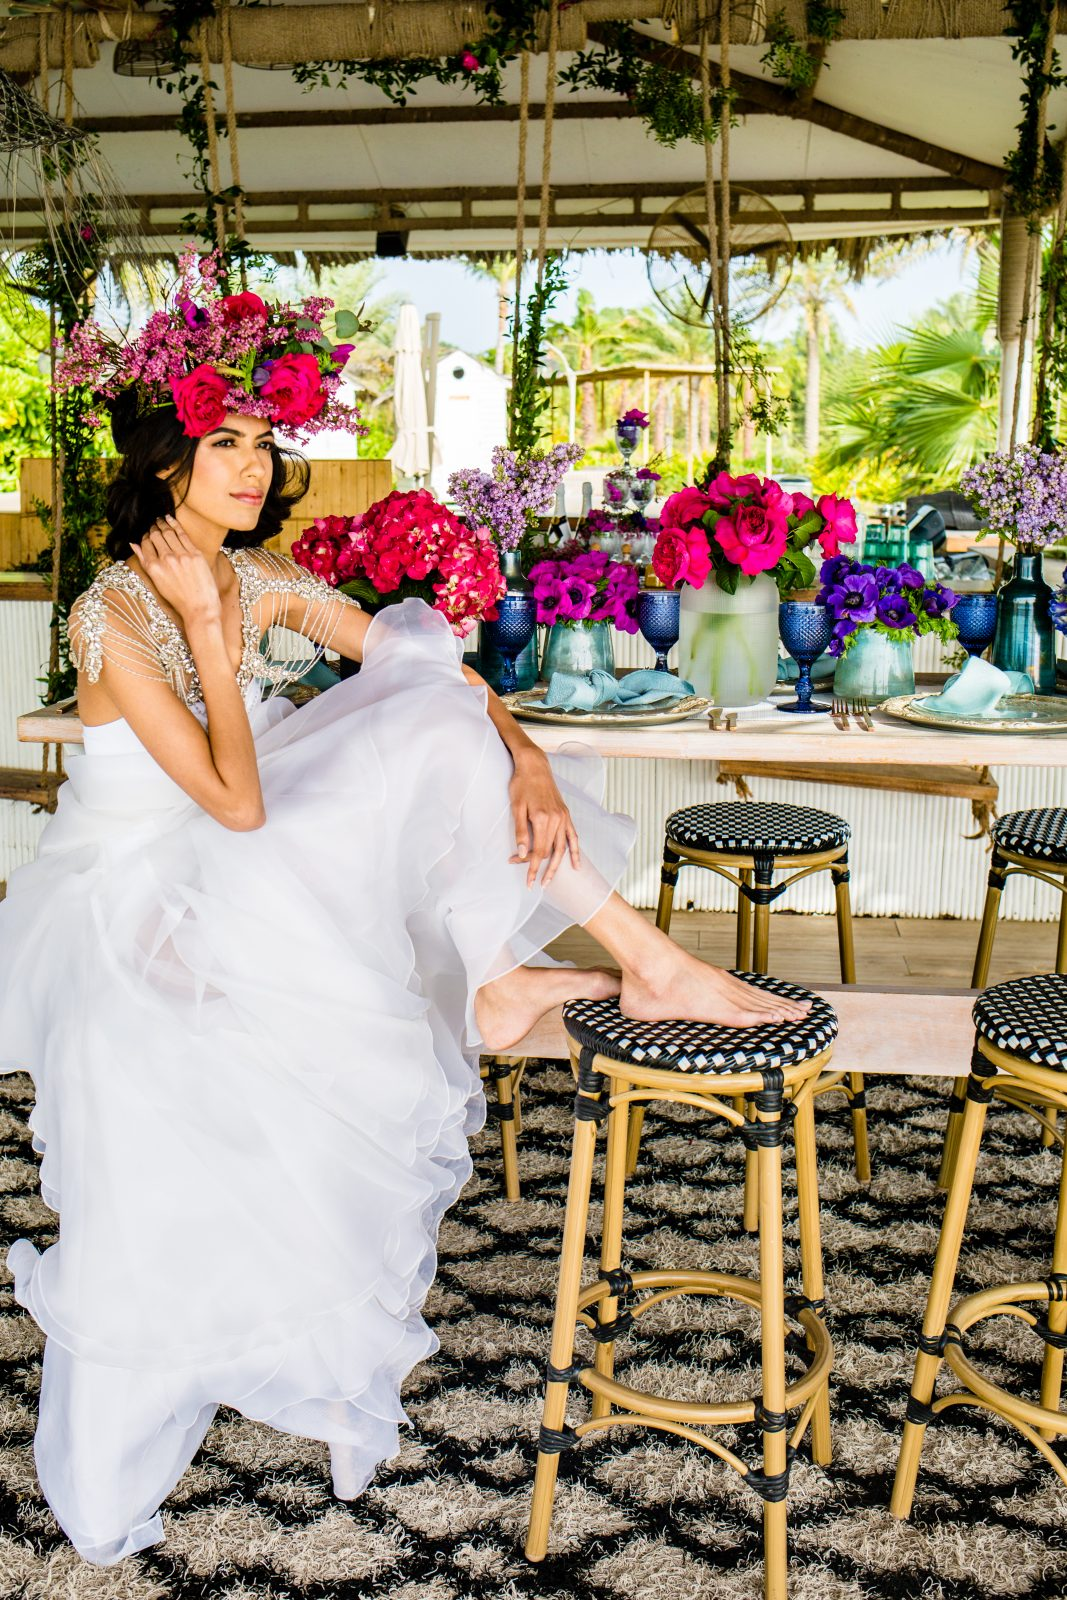 Model posing at beautiful wedding inspired table set up